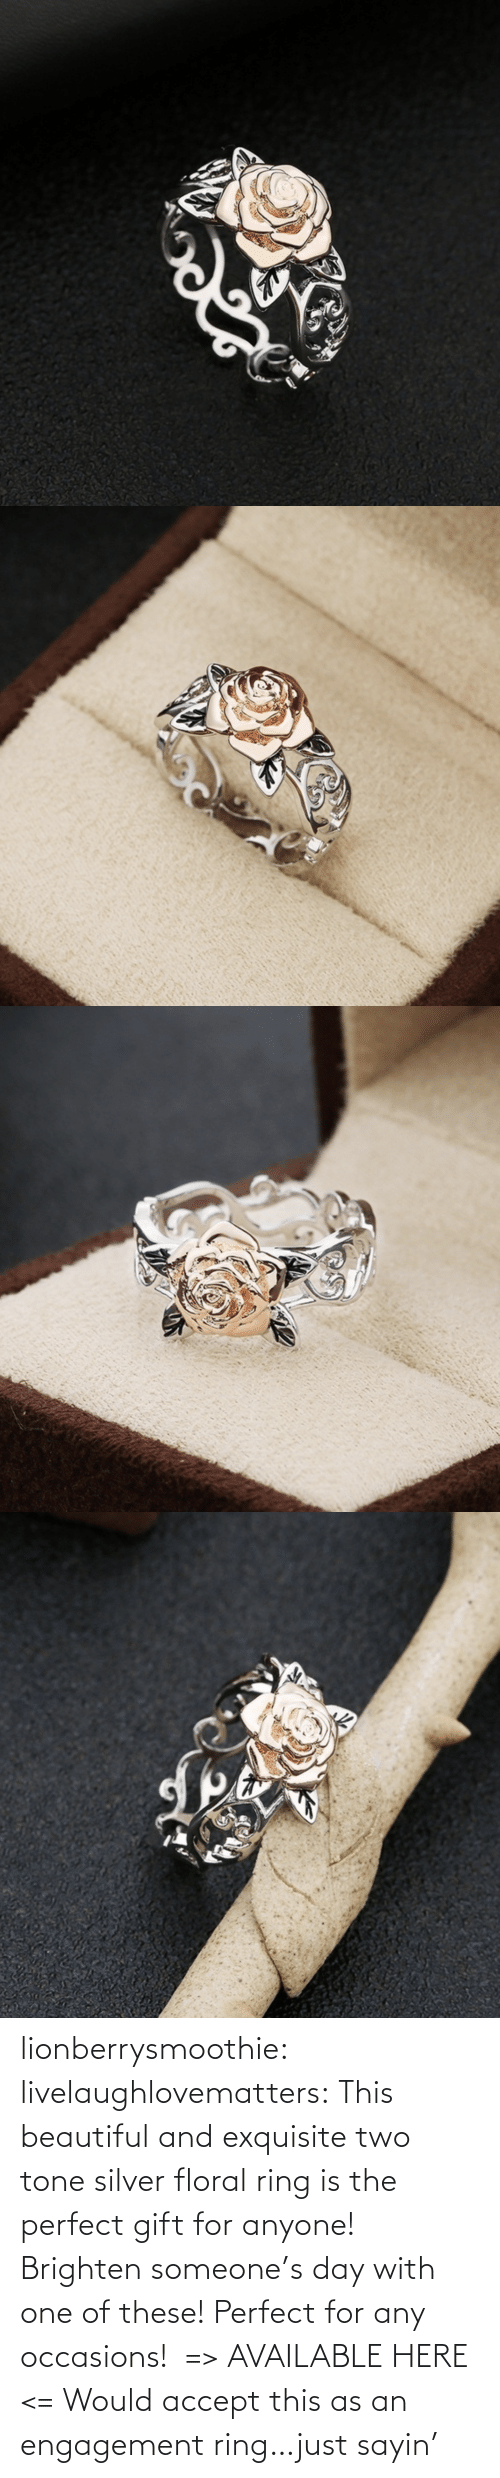 Engagement: lionberrysmoothie:  livelaughlovematters: This beautiful and exquisite two tone silver floral ring is the perfect gift for anyone! Brighten someone's day with one of these! Perfect for any occasions!  => AVAILABLE HERE <=    Would accept this as an engagement ring…just sayin'